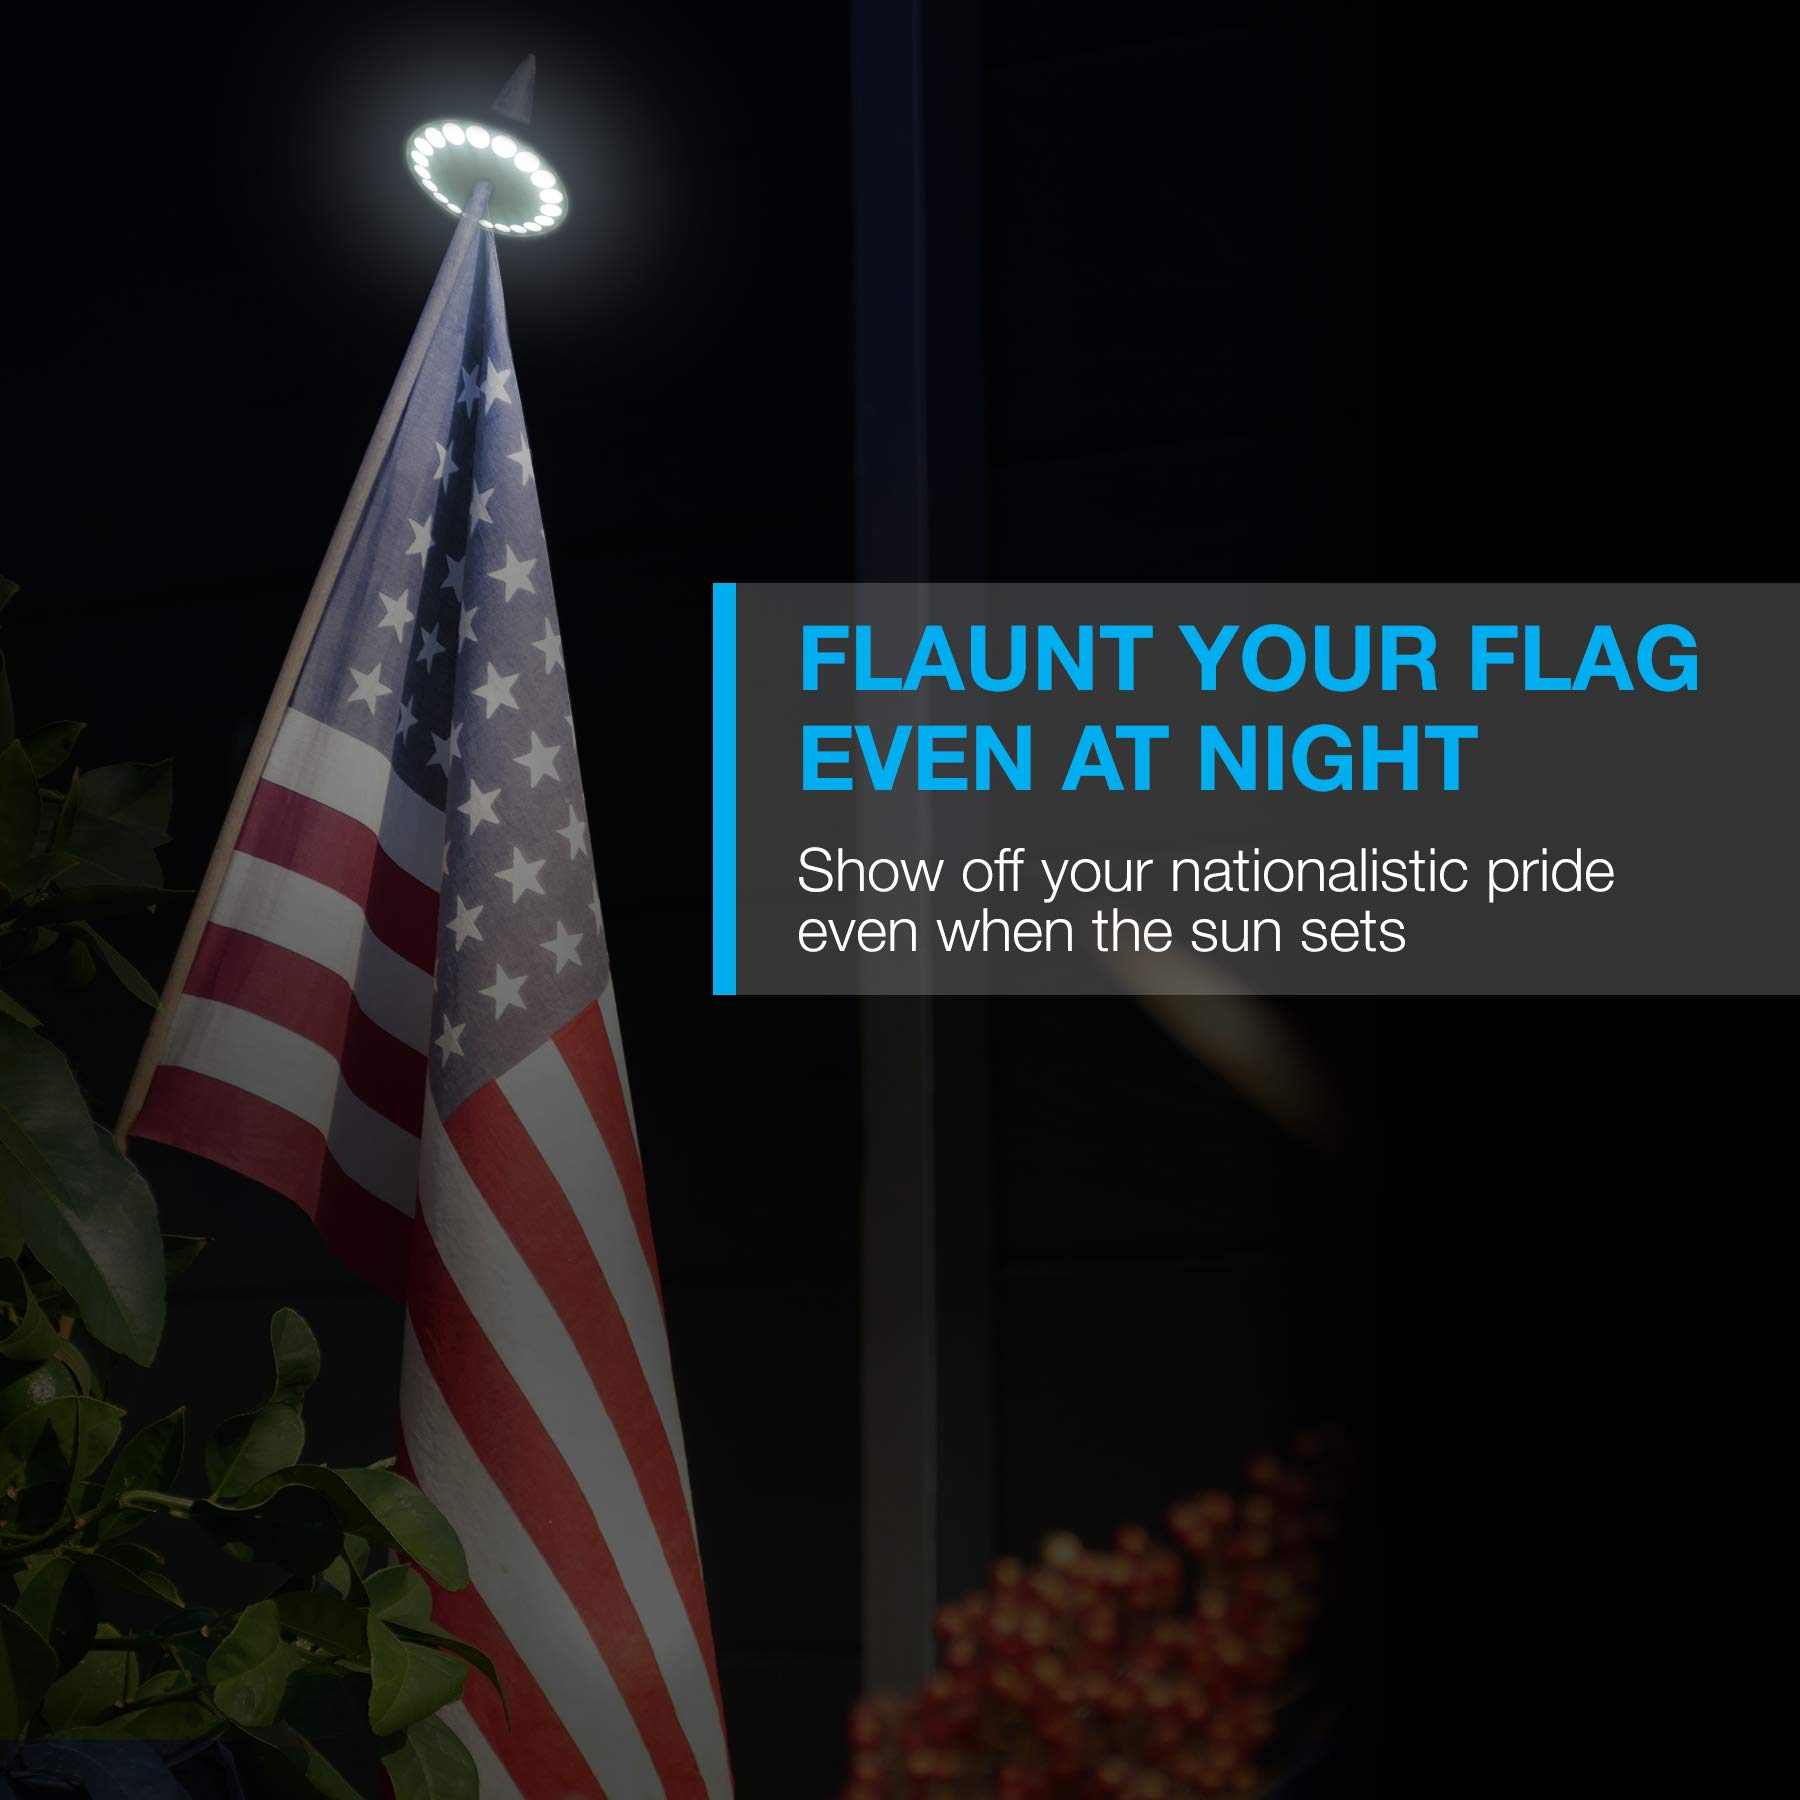 Solar Flag Pole Light, Lasts 2X Longer Than Competition, Super Bright Flag Pole Lights, 100% Flag Coverage, Fits Most Most Flag Poles, Flag Pole Lights Solar Powered, Bright Energy Saving LEDs - Vont by Vont (Image #2)